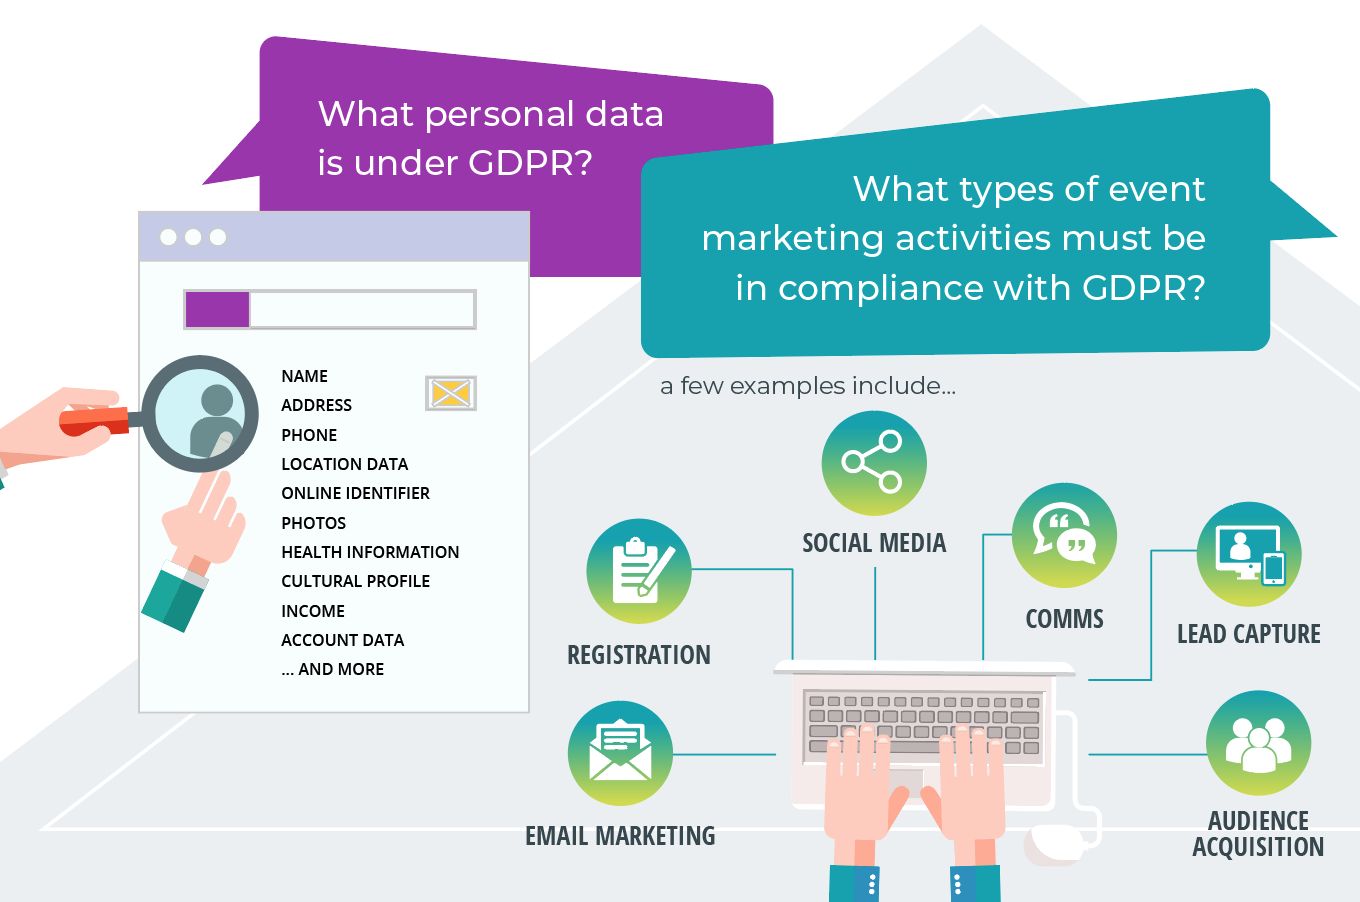 GDPR protects the privacy of EU's personal data on the internet; event marketing such as lead capture, email marketing, and any other type of promotion involving personal data are required to be in compliance with GDPR.